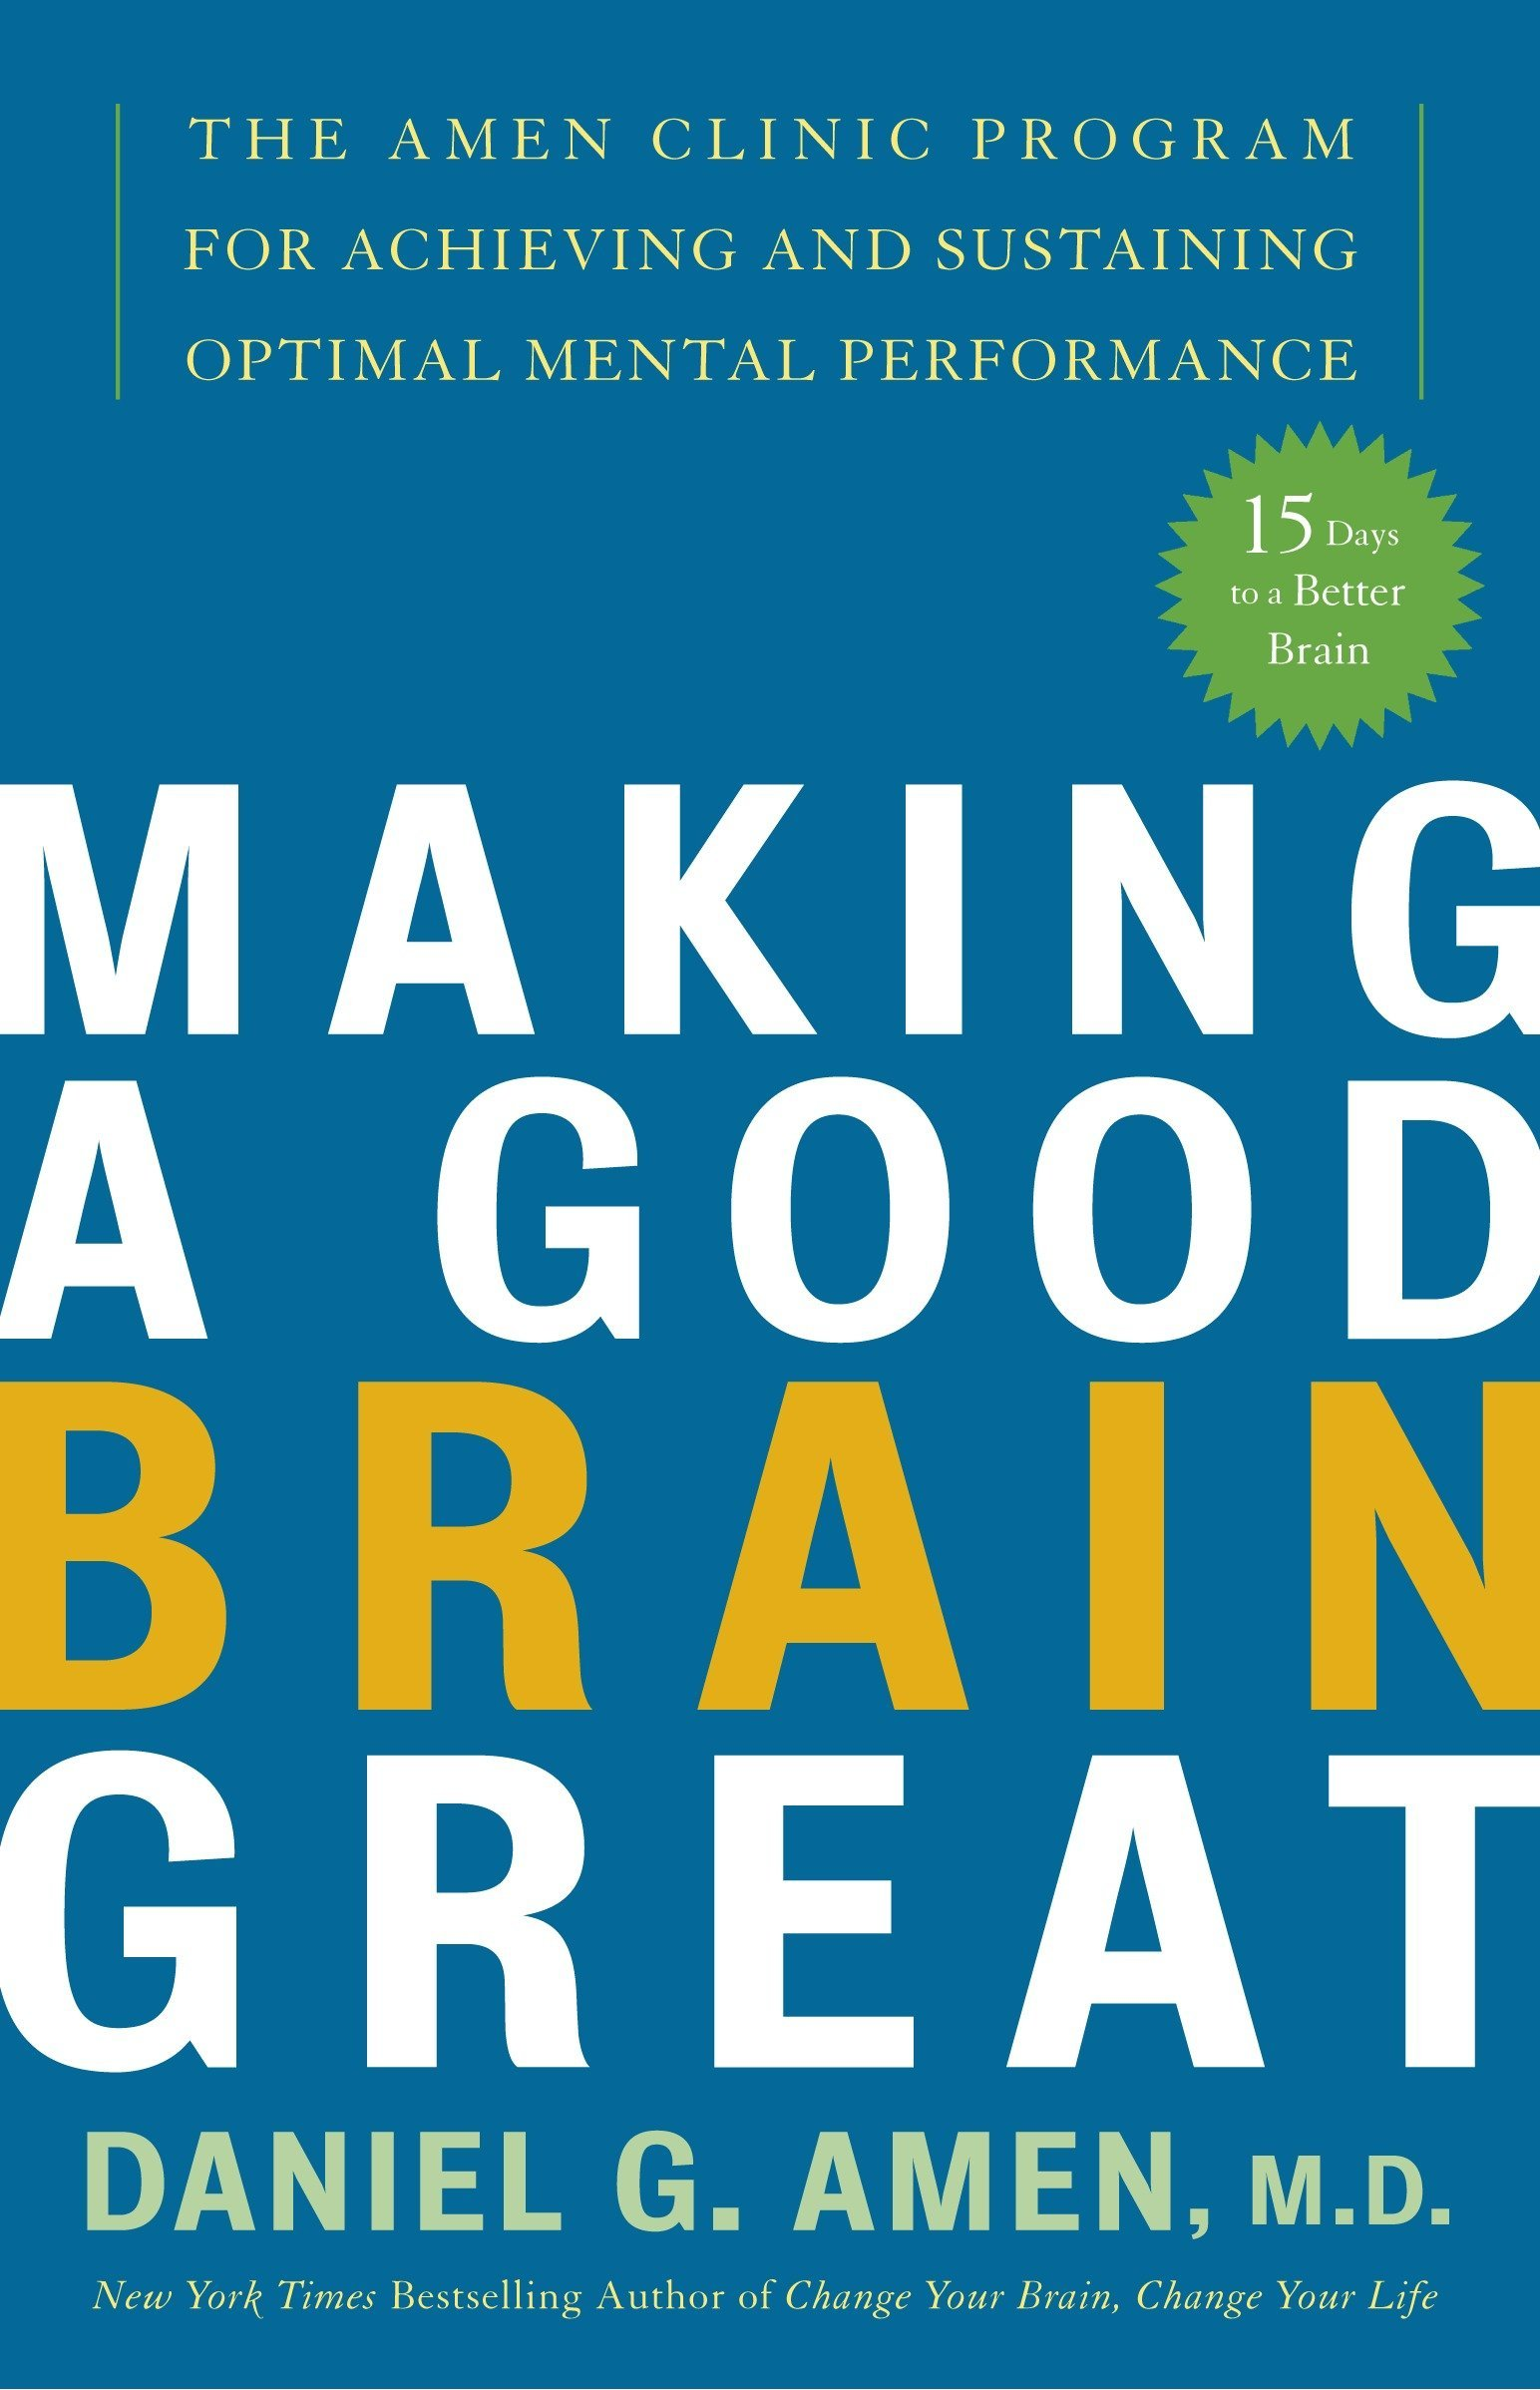 Me and my little brain great brain book 3 ebook 26530389 array making a good brain great the amen clinic program for achieving and rh amazon fandeluxe Choice Image